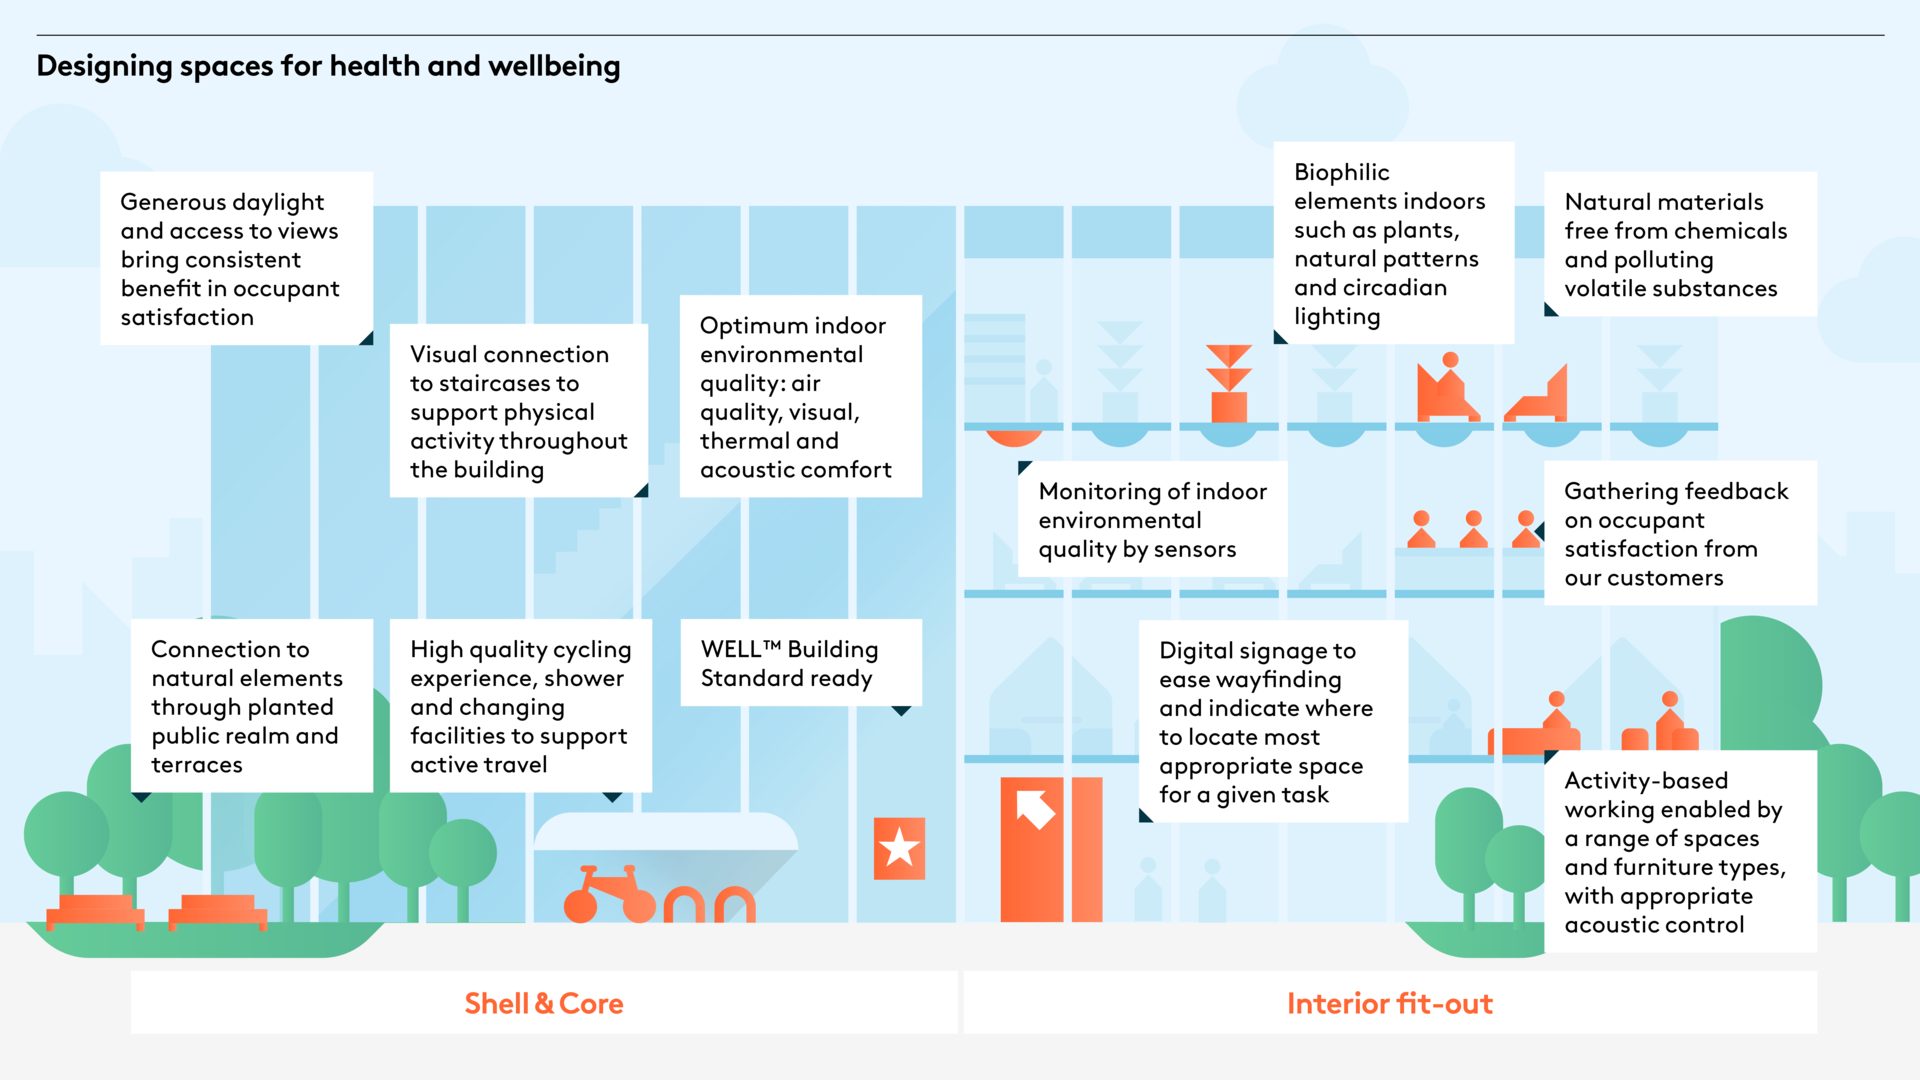 Designing space for health and wellbeing